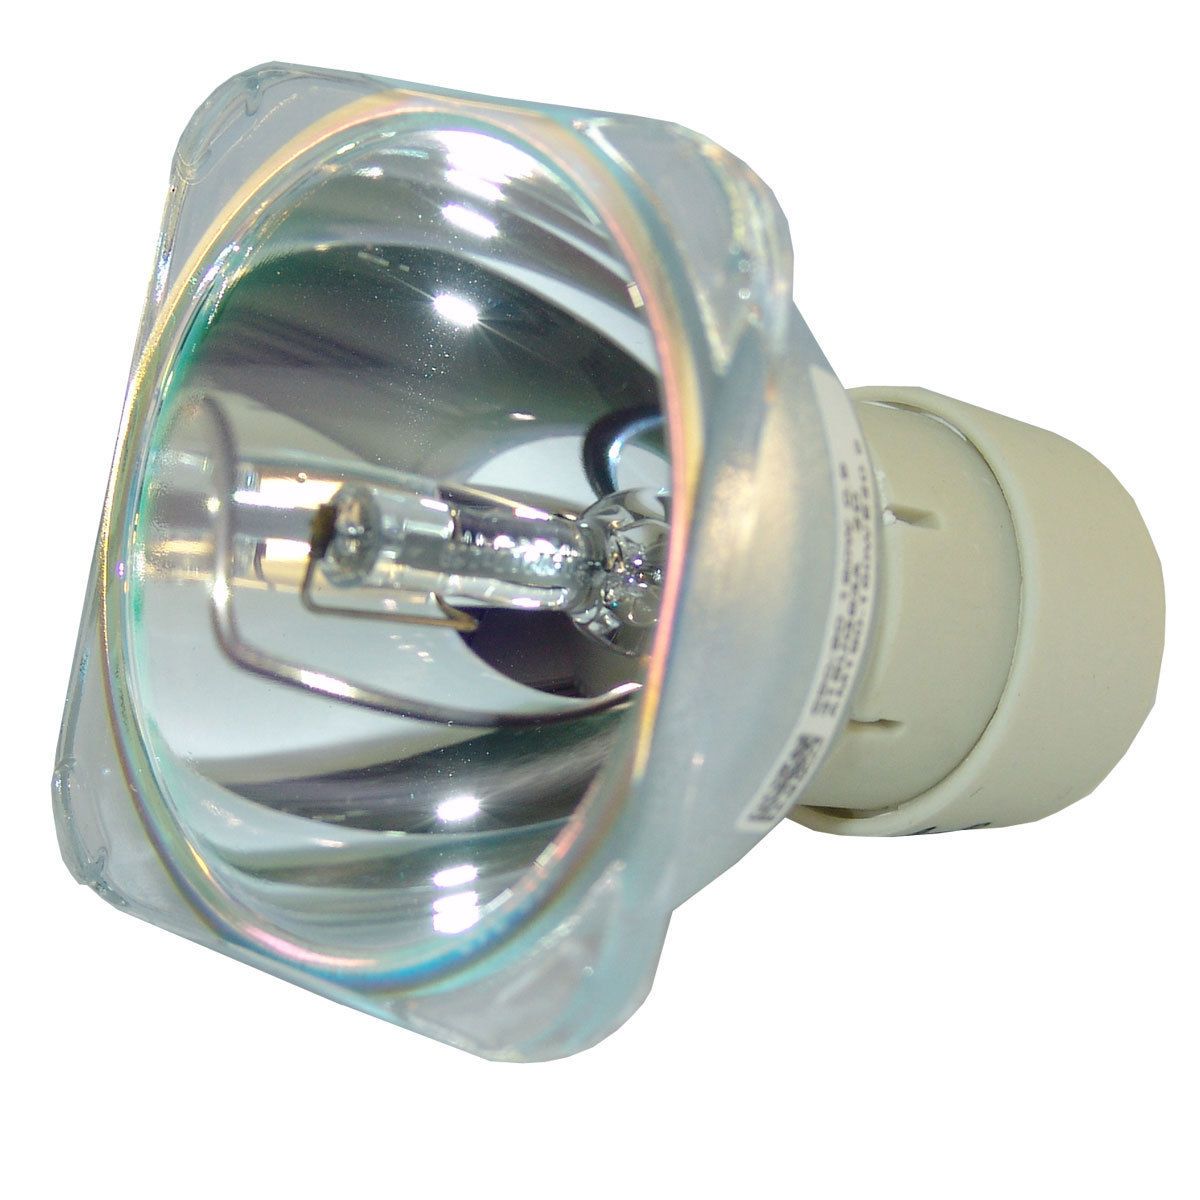 Compatible Bare Bulb 5J.J6L05.001 for BenQ MS507H Projector Lamp Bulb without housing replacement compatible bare bulb 5j 08g01 001 lamp for benq mp730 projector